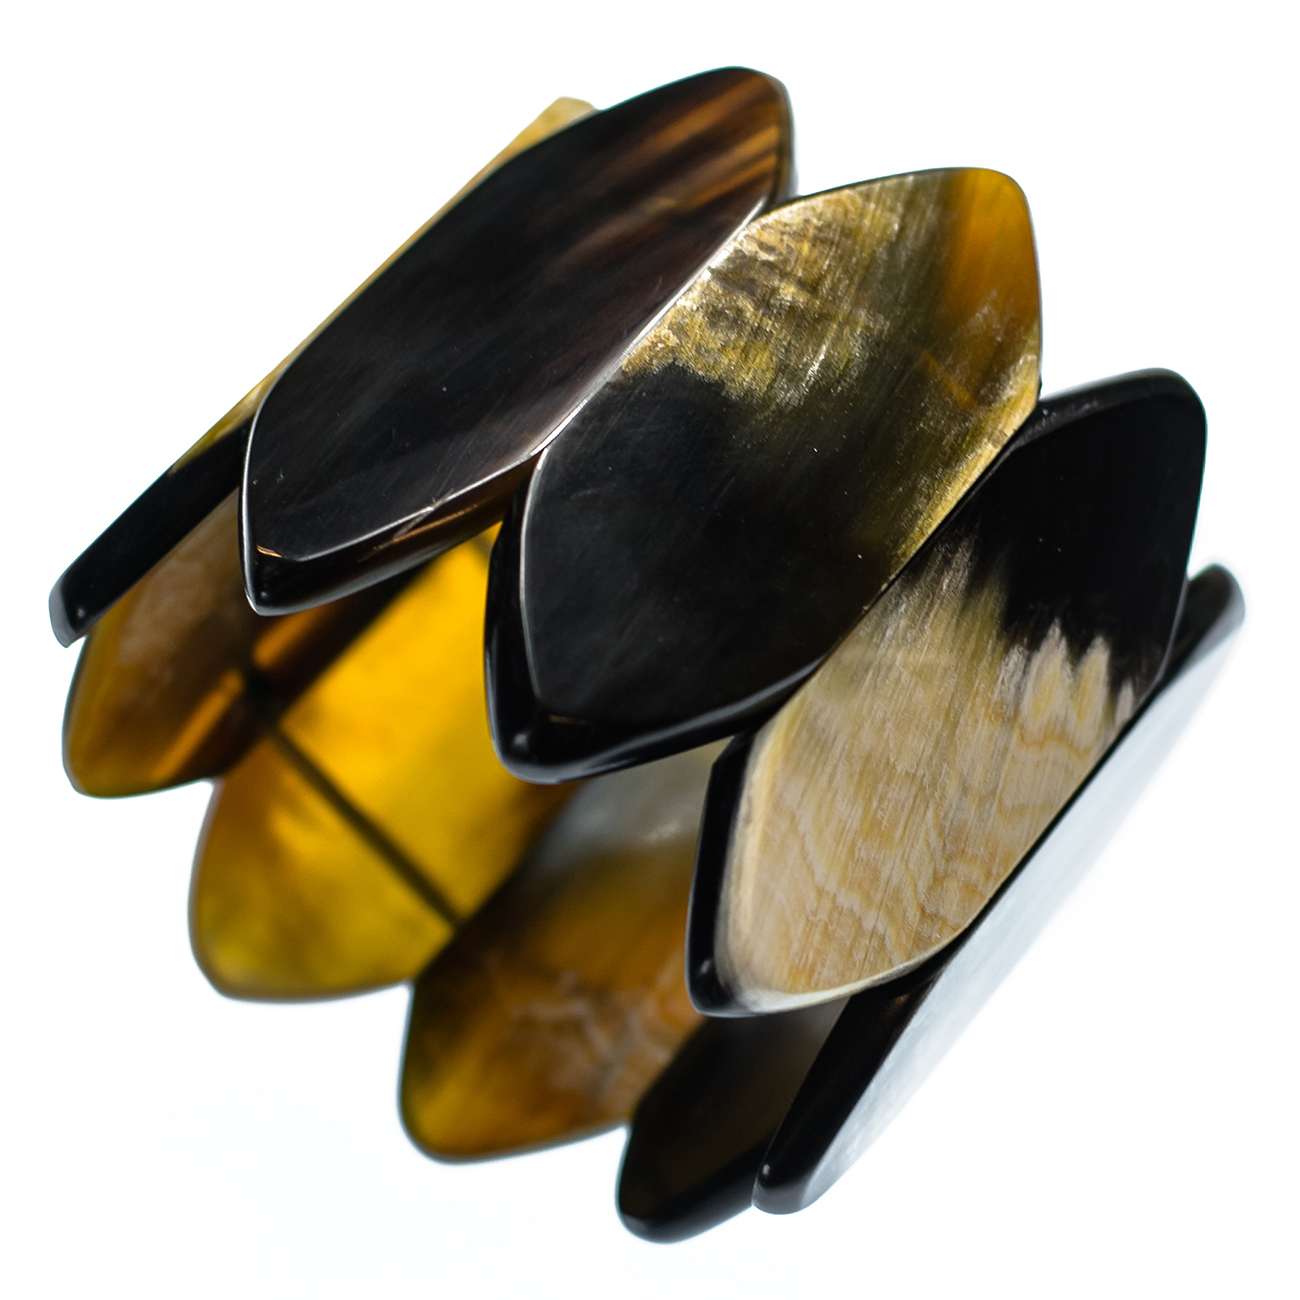 pimpandhost image share.com 10( Ethically sourced horn shaped by artisans in Haiti.